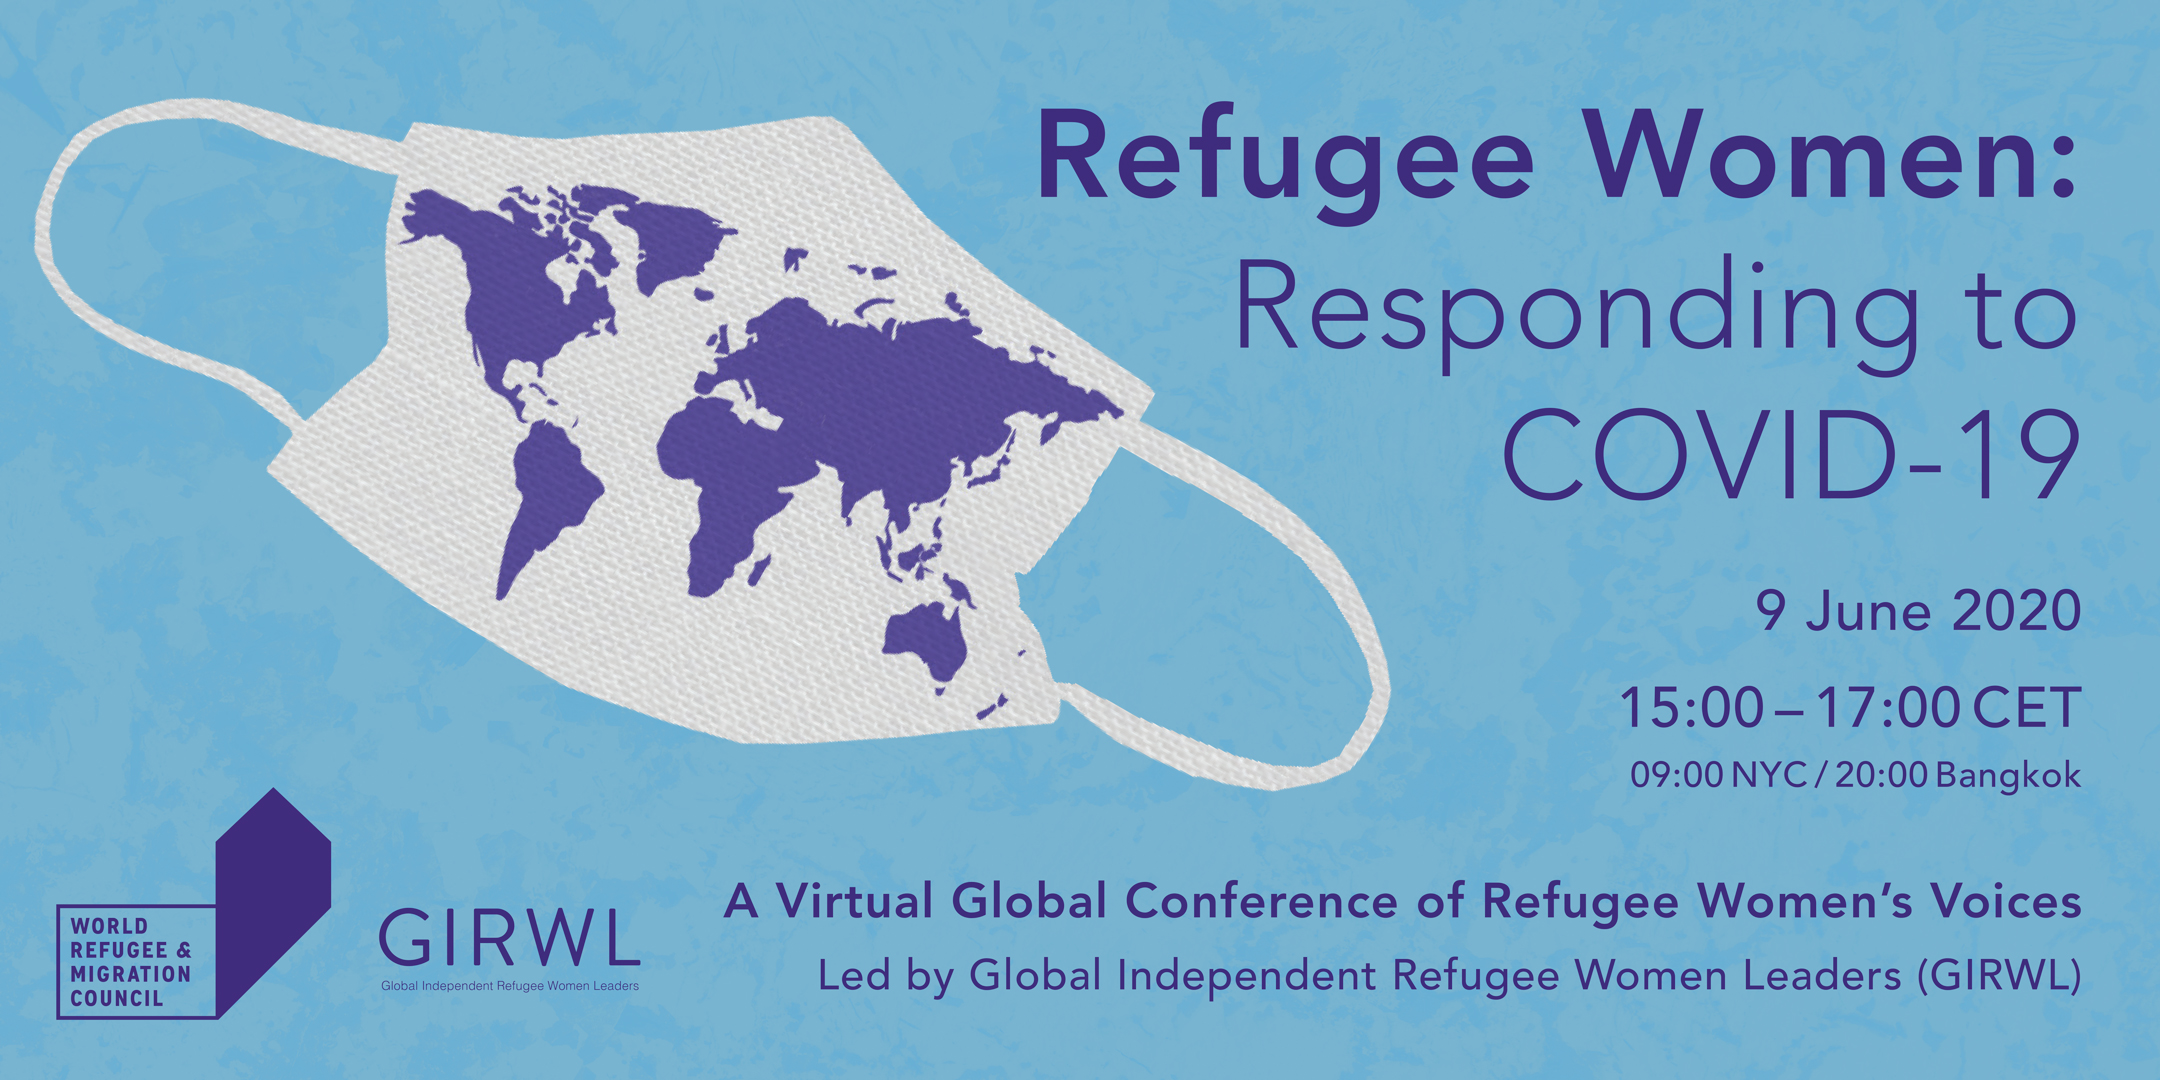 Refuge Women: Responding to COVID-19